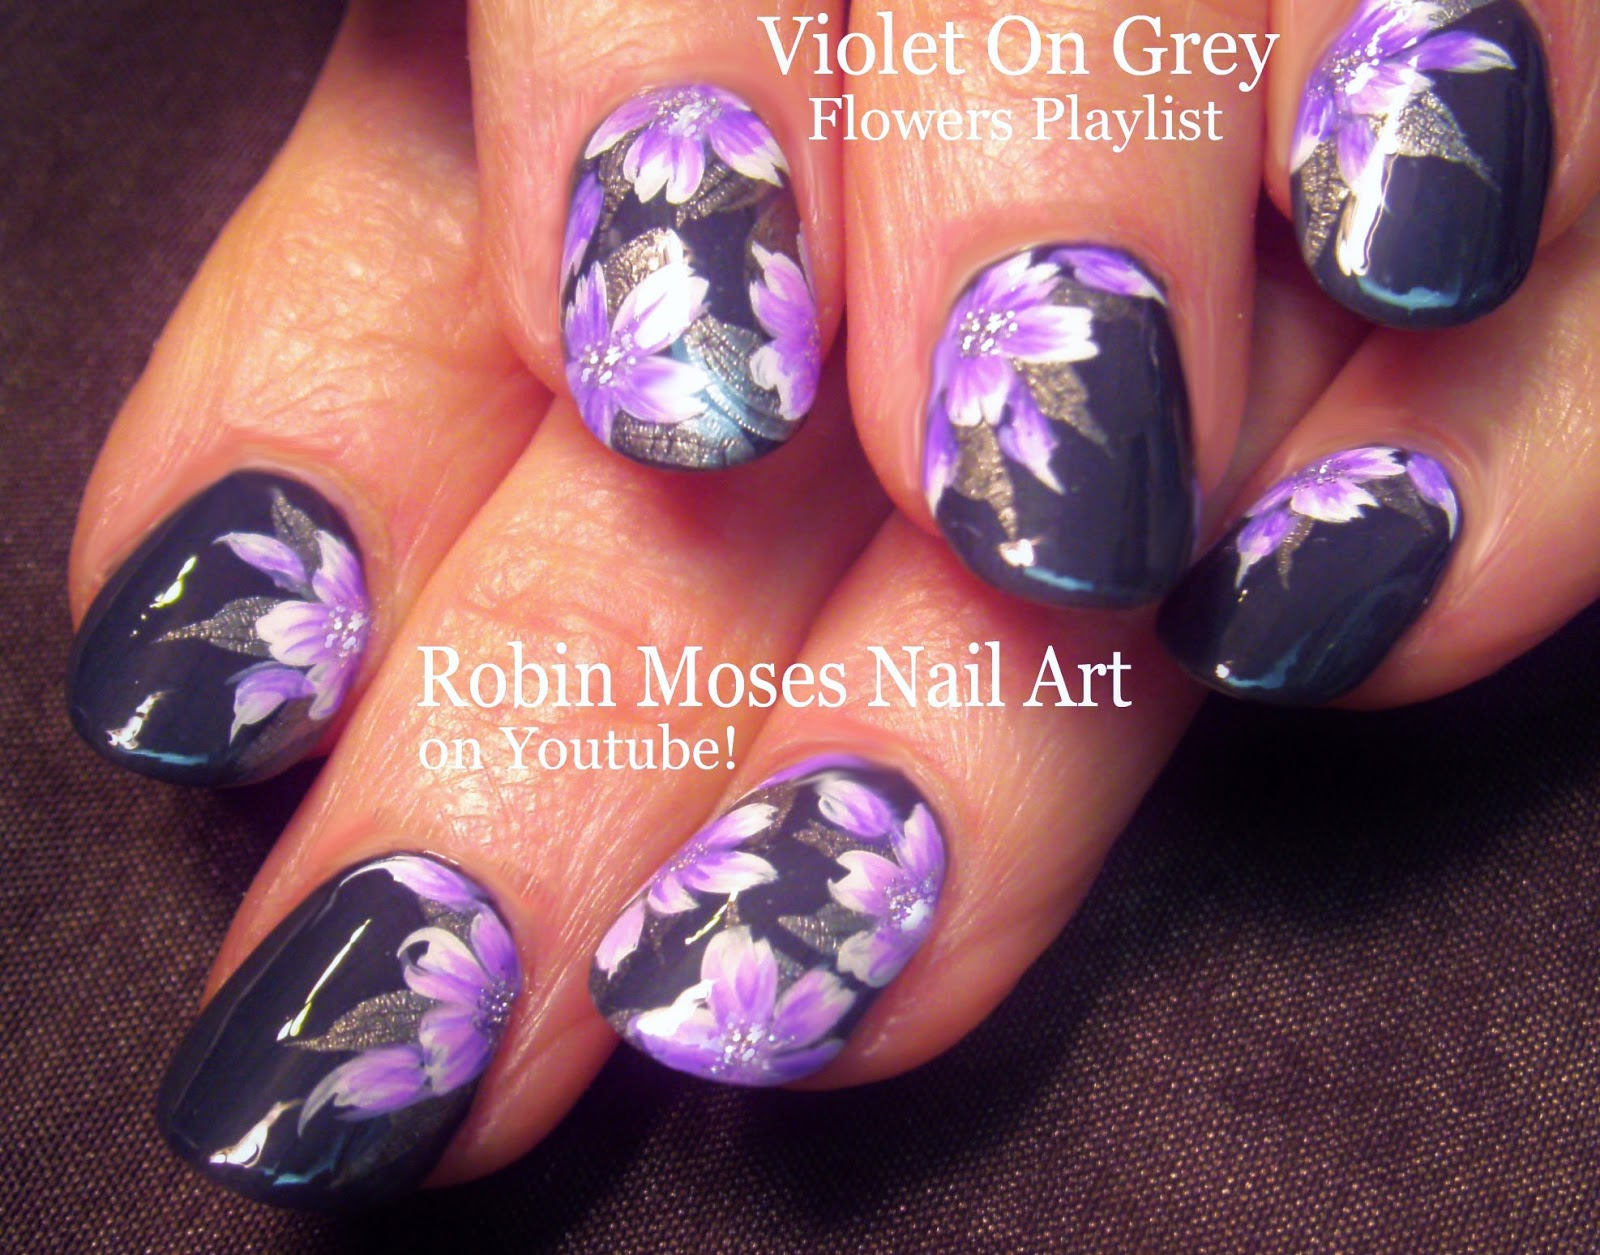 Nail Art By Robin Moses Flower Nails Lavender And Gray Flowers